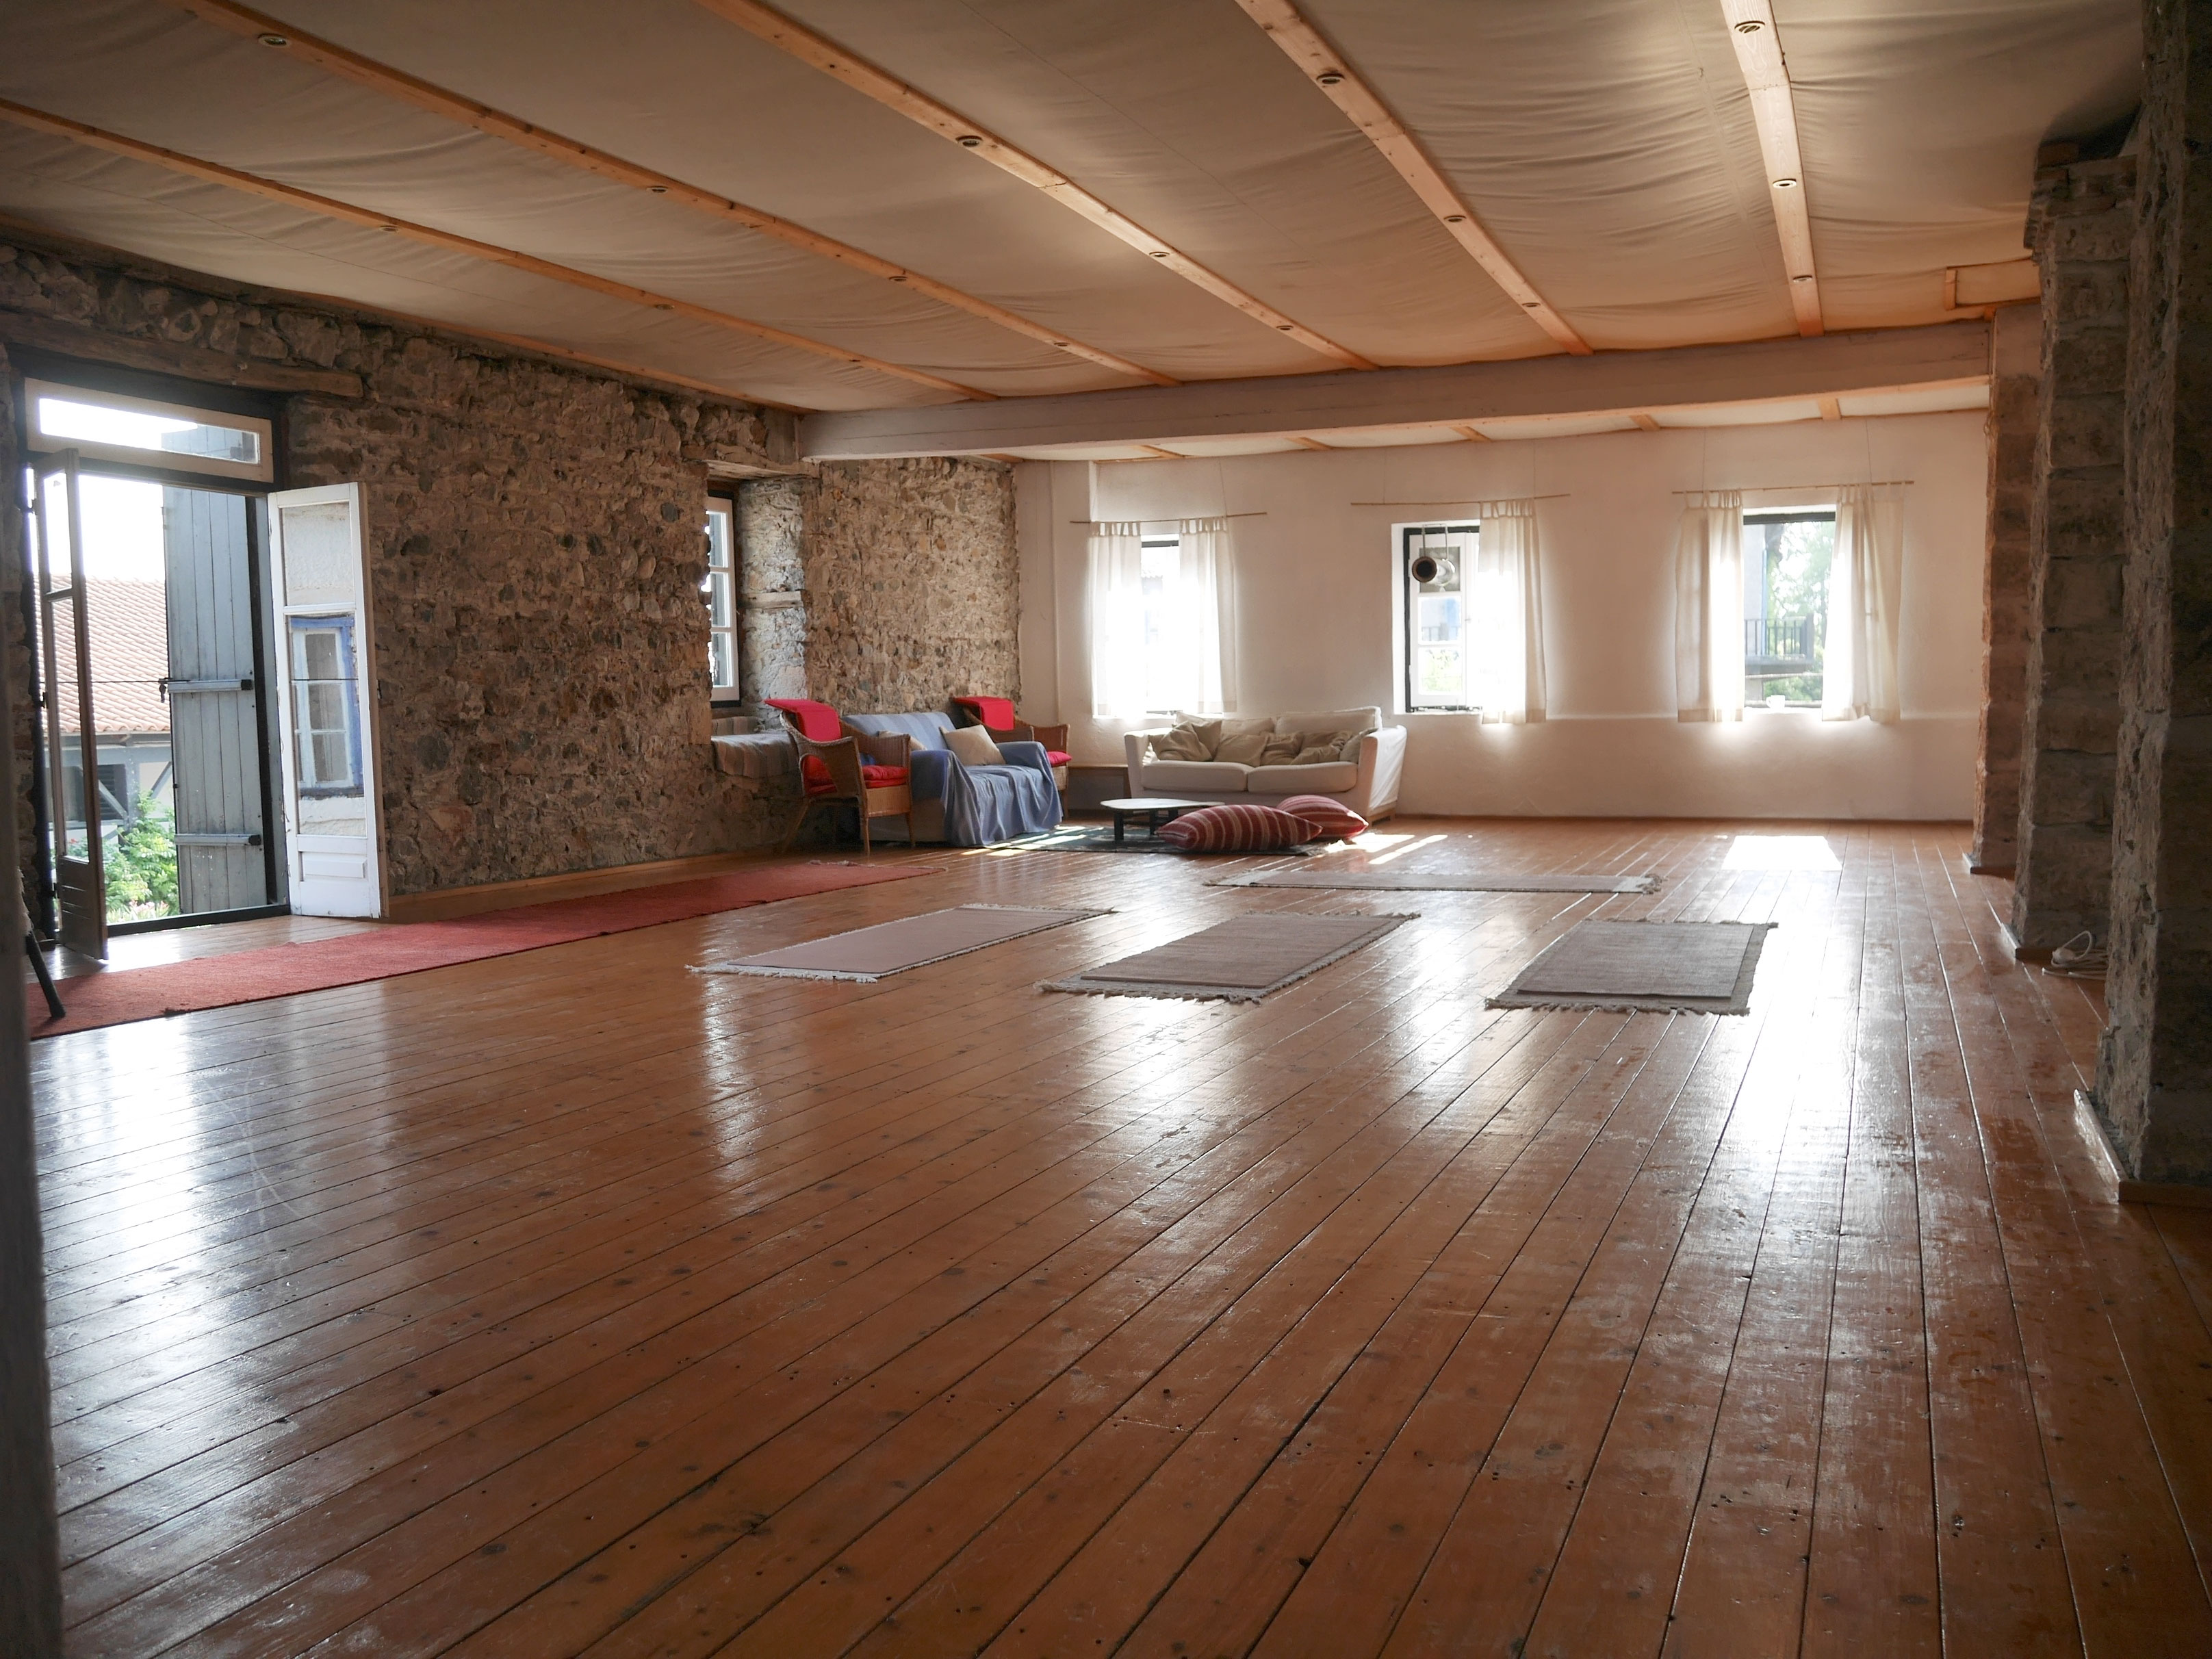 Yoga and seminar room